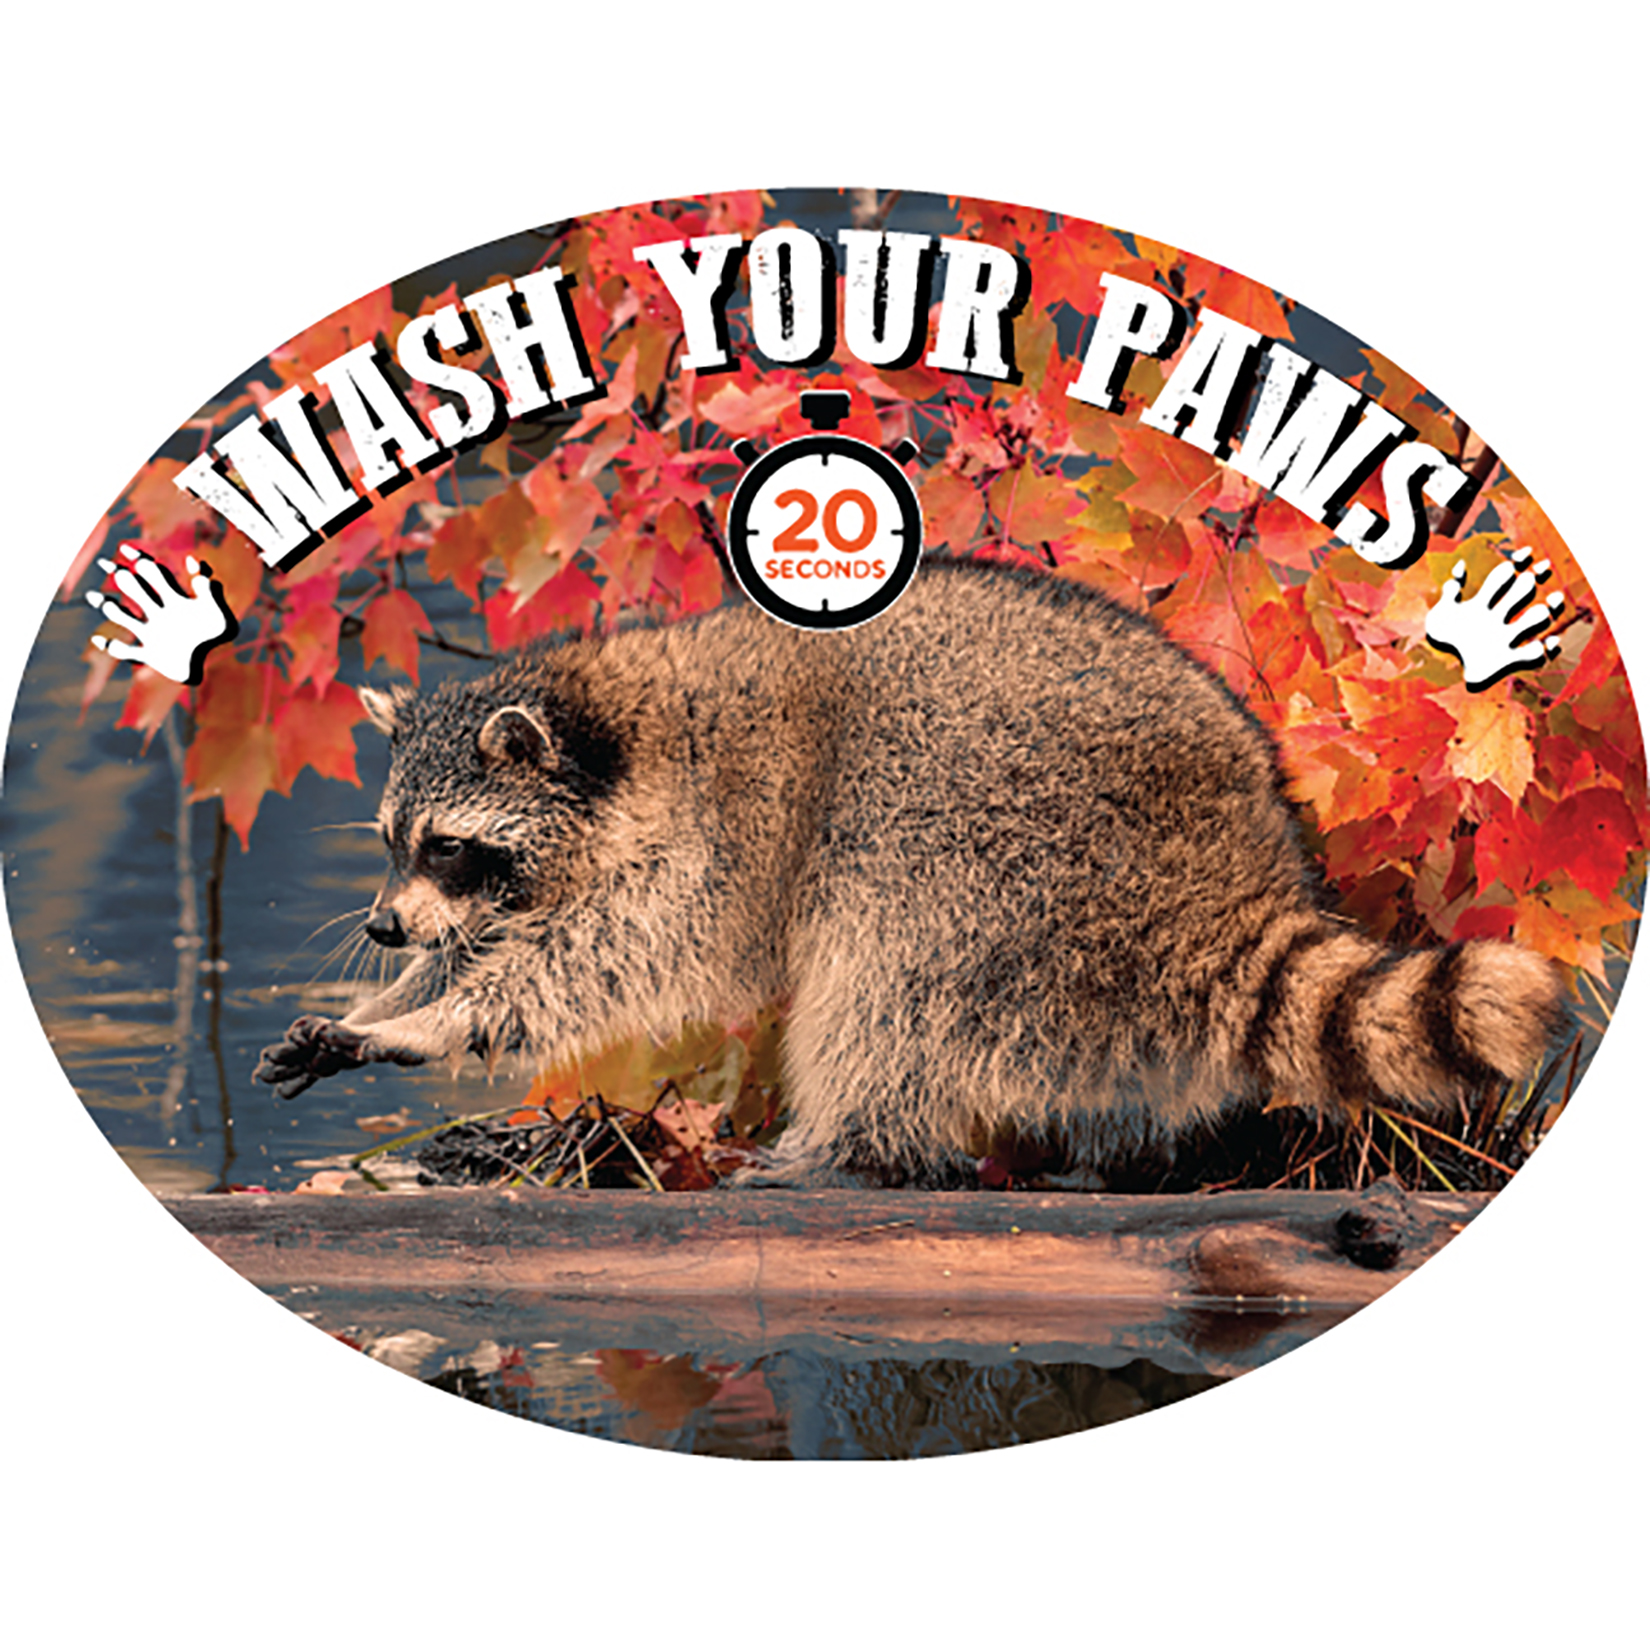 Raccoon Wash Your Paws Plaque